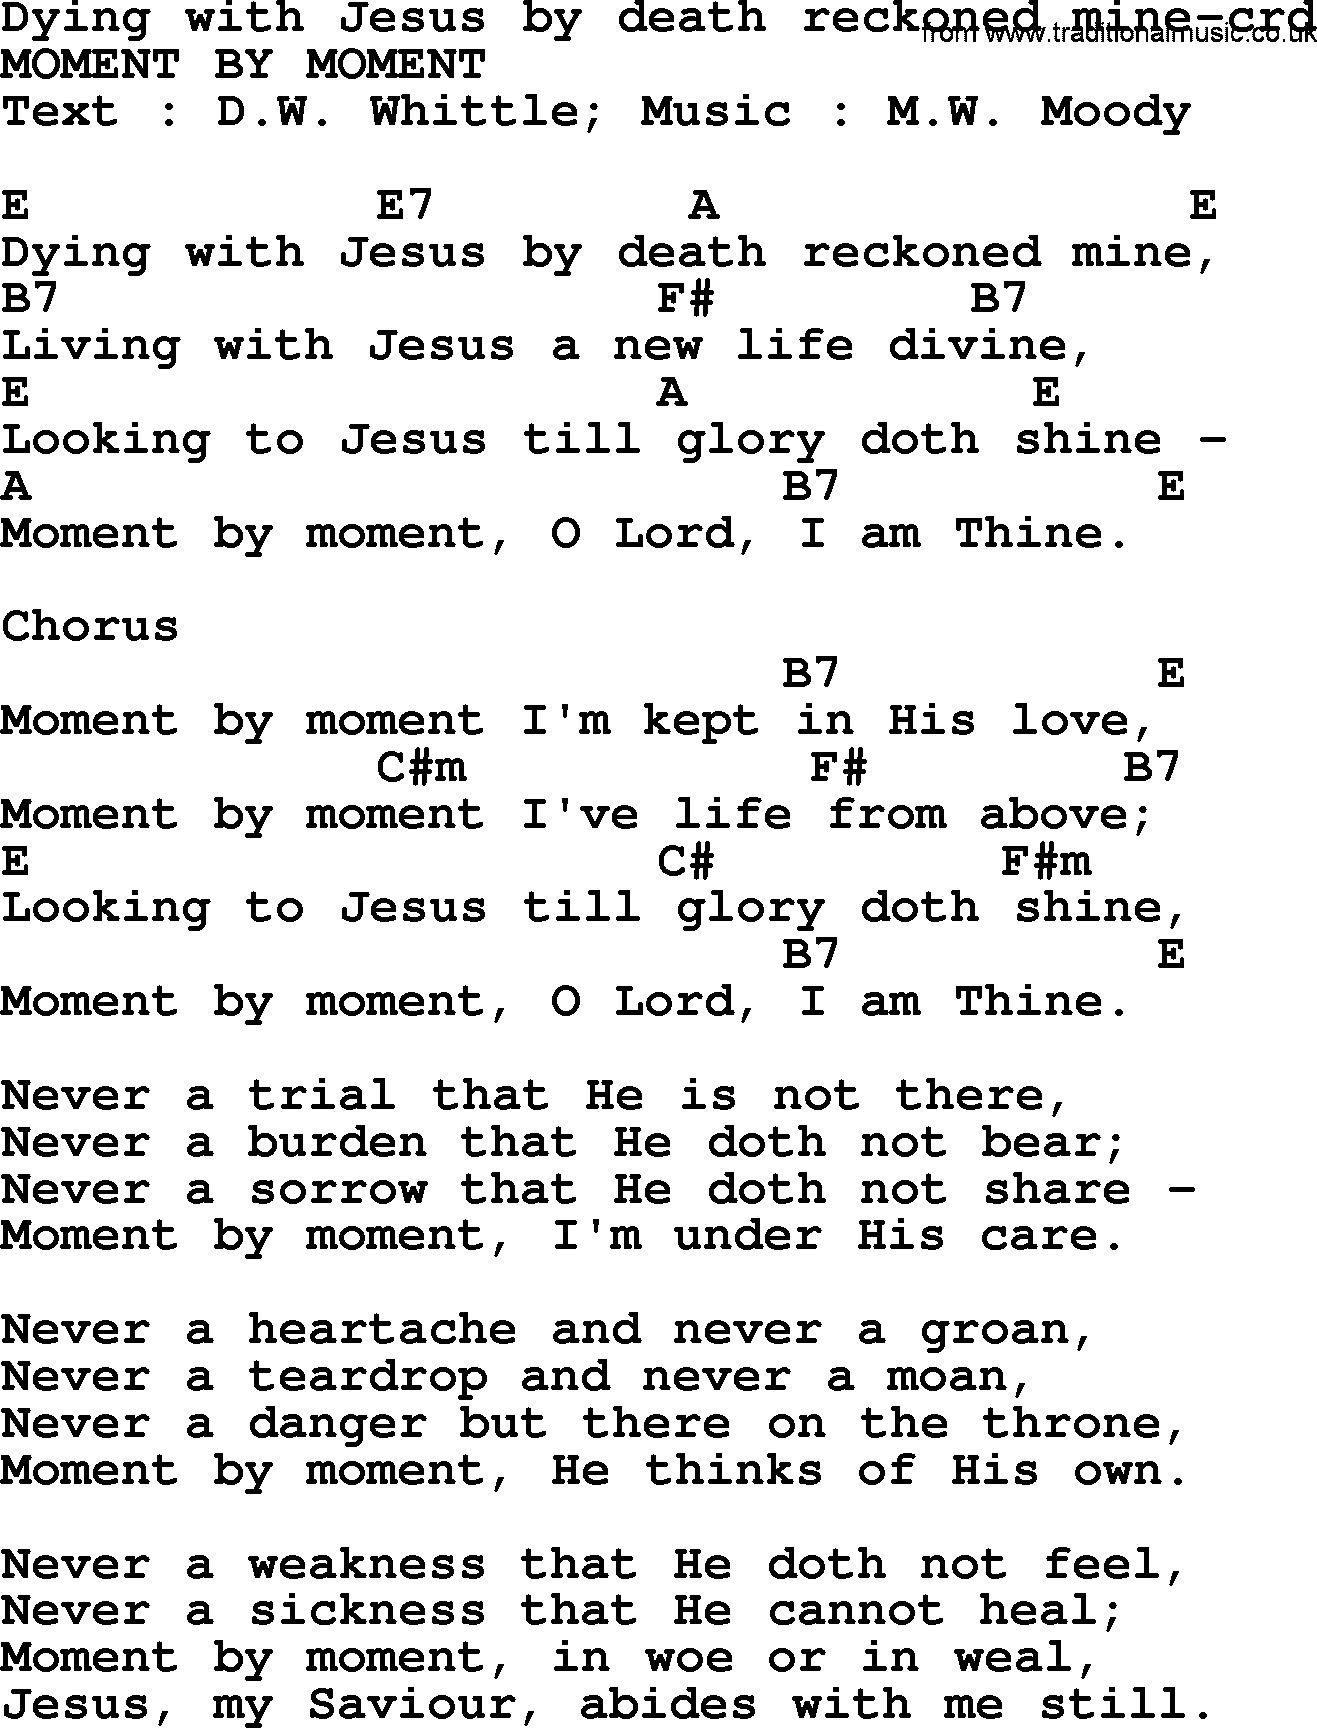 Top 500 hymn dying with jesus by death reckoned mine lyrics top 500 hymn dying with jesus by death reckoned mine lyrics and chords hexwebz Image collections